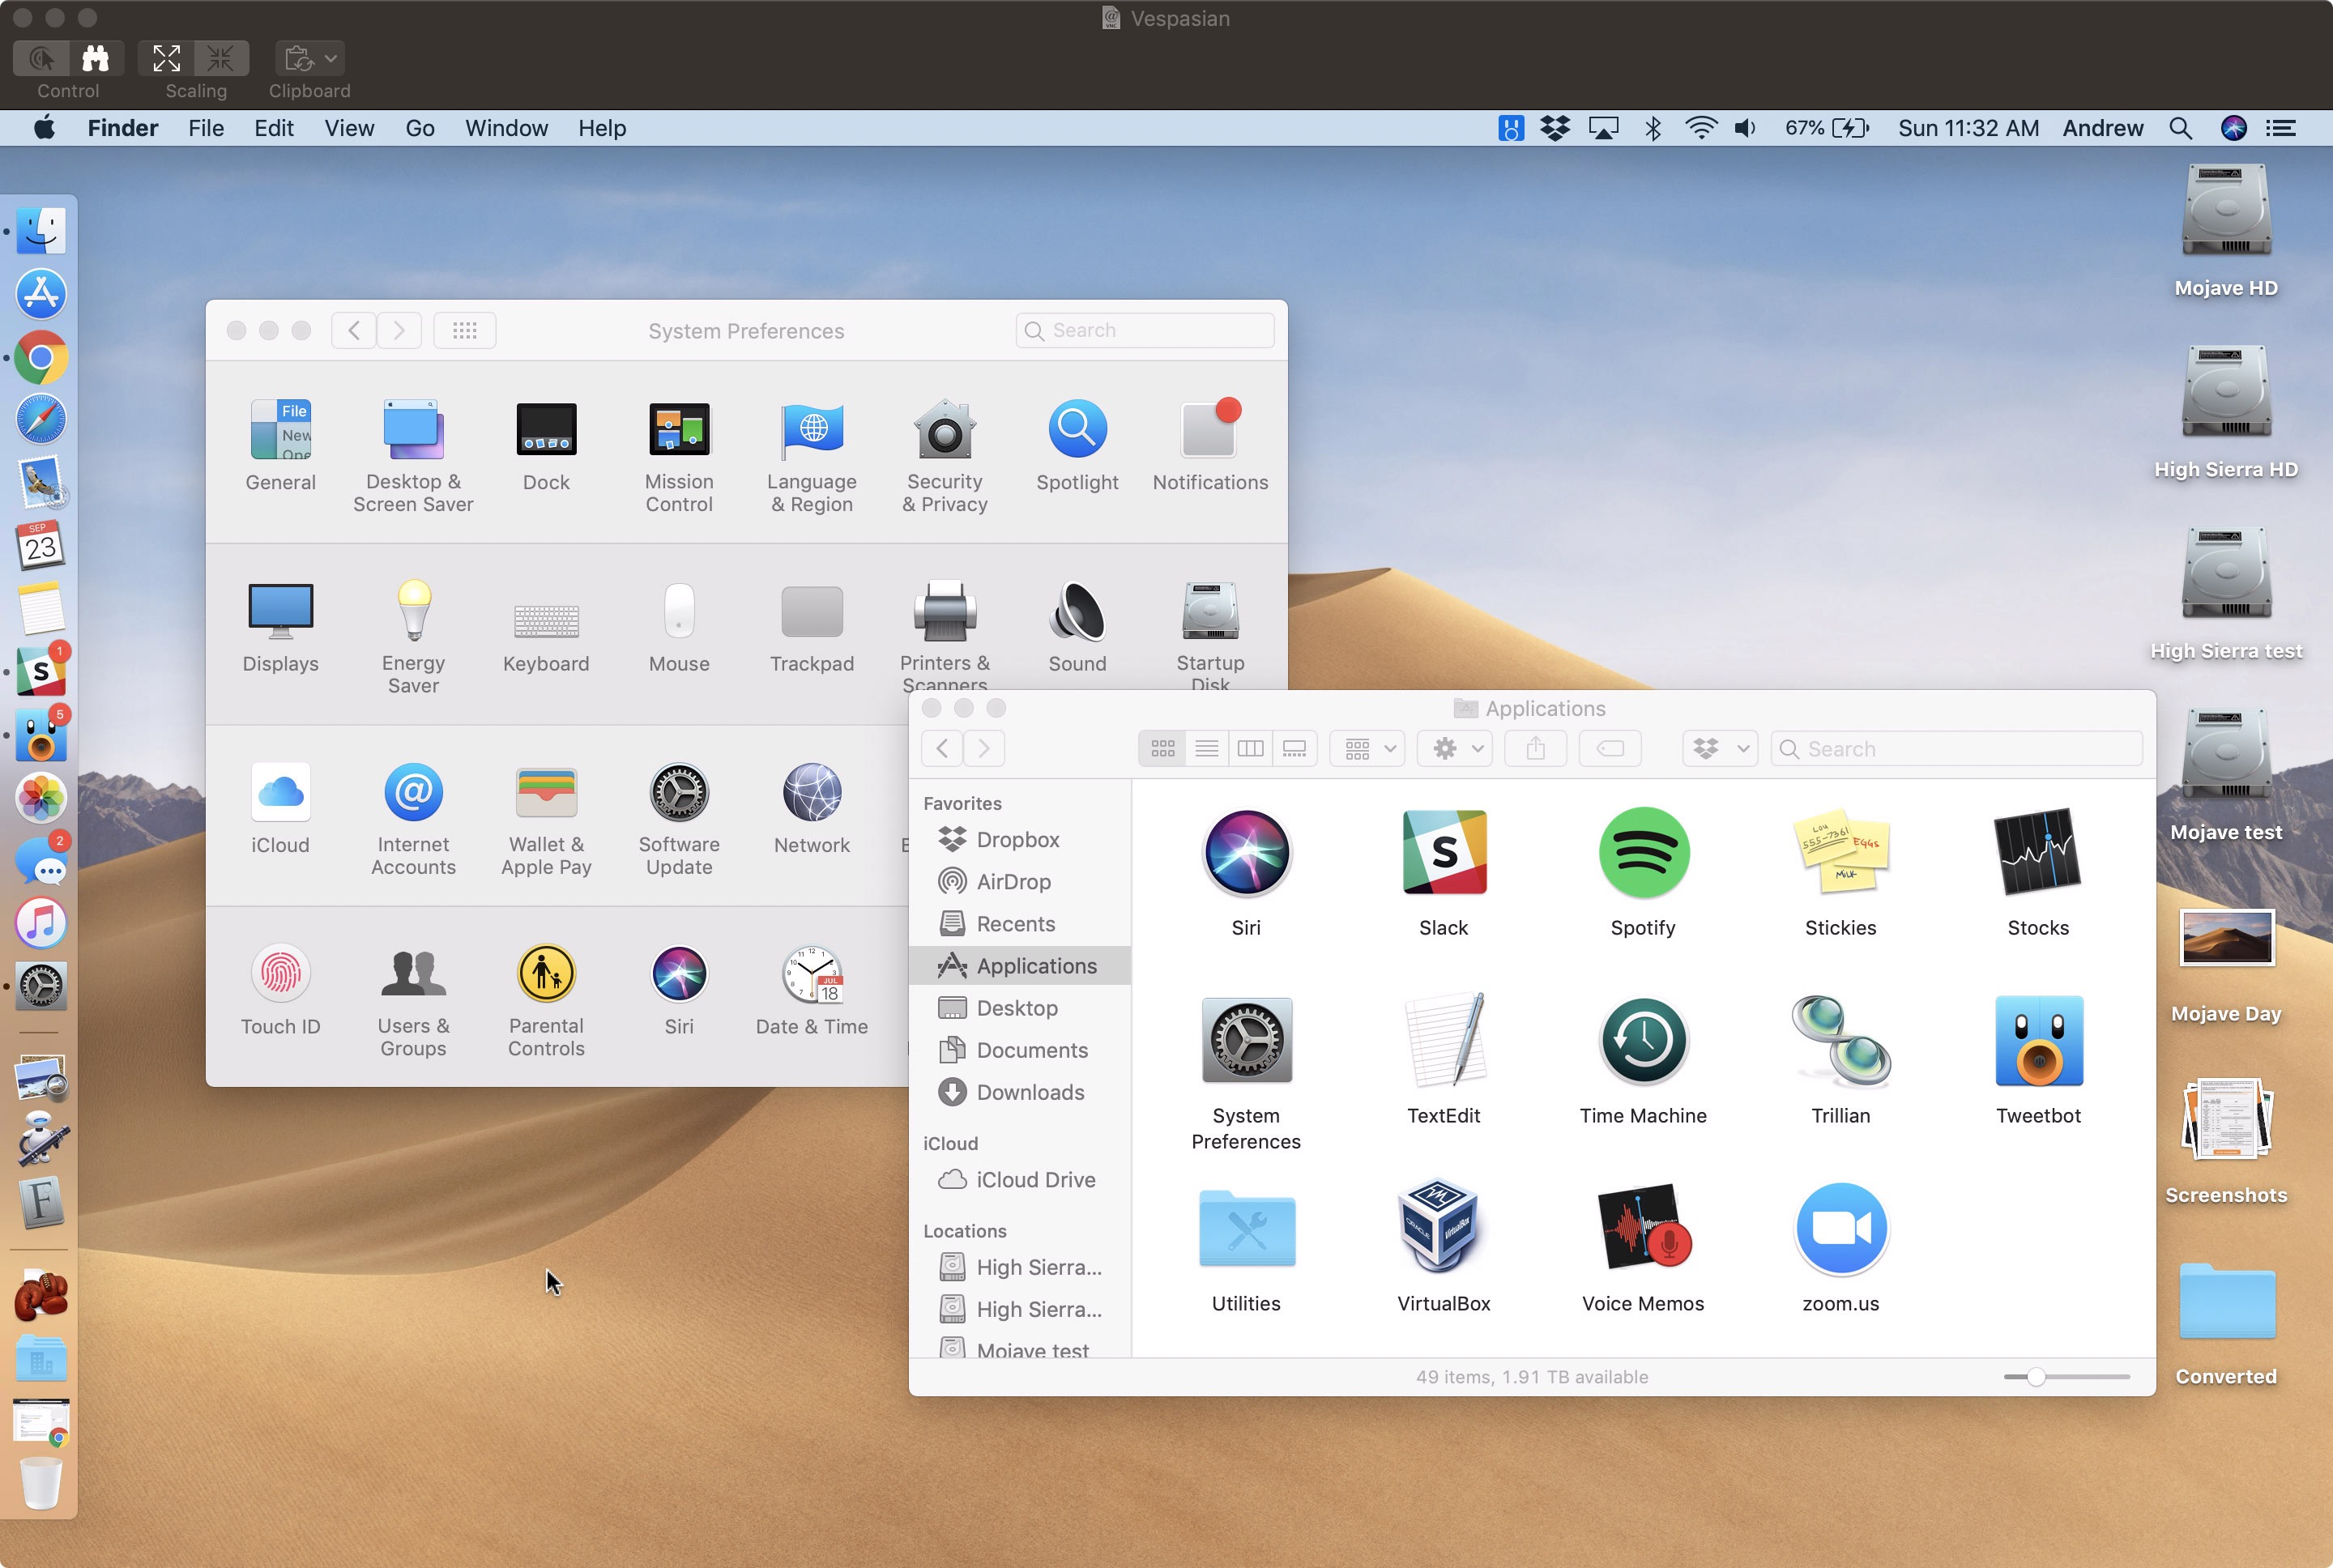 macOS 10.14 Mojave: The Ars Technica review.